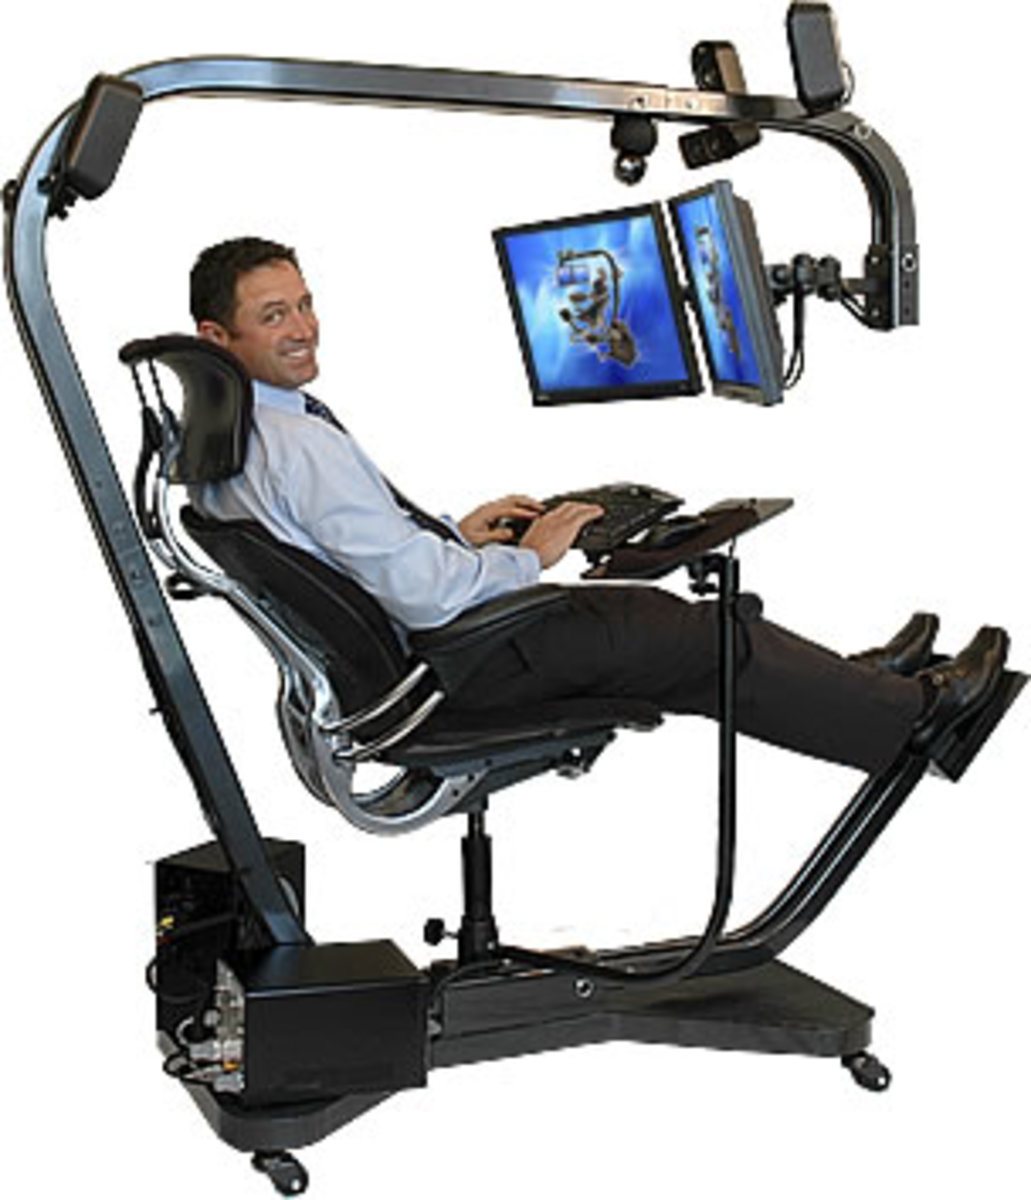 Ergonomic Computer Chair: This one is a bit extreme